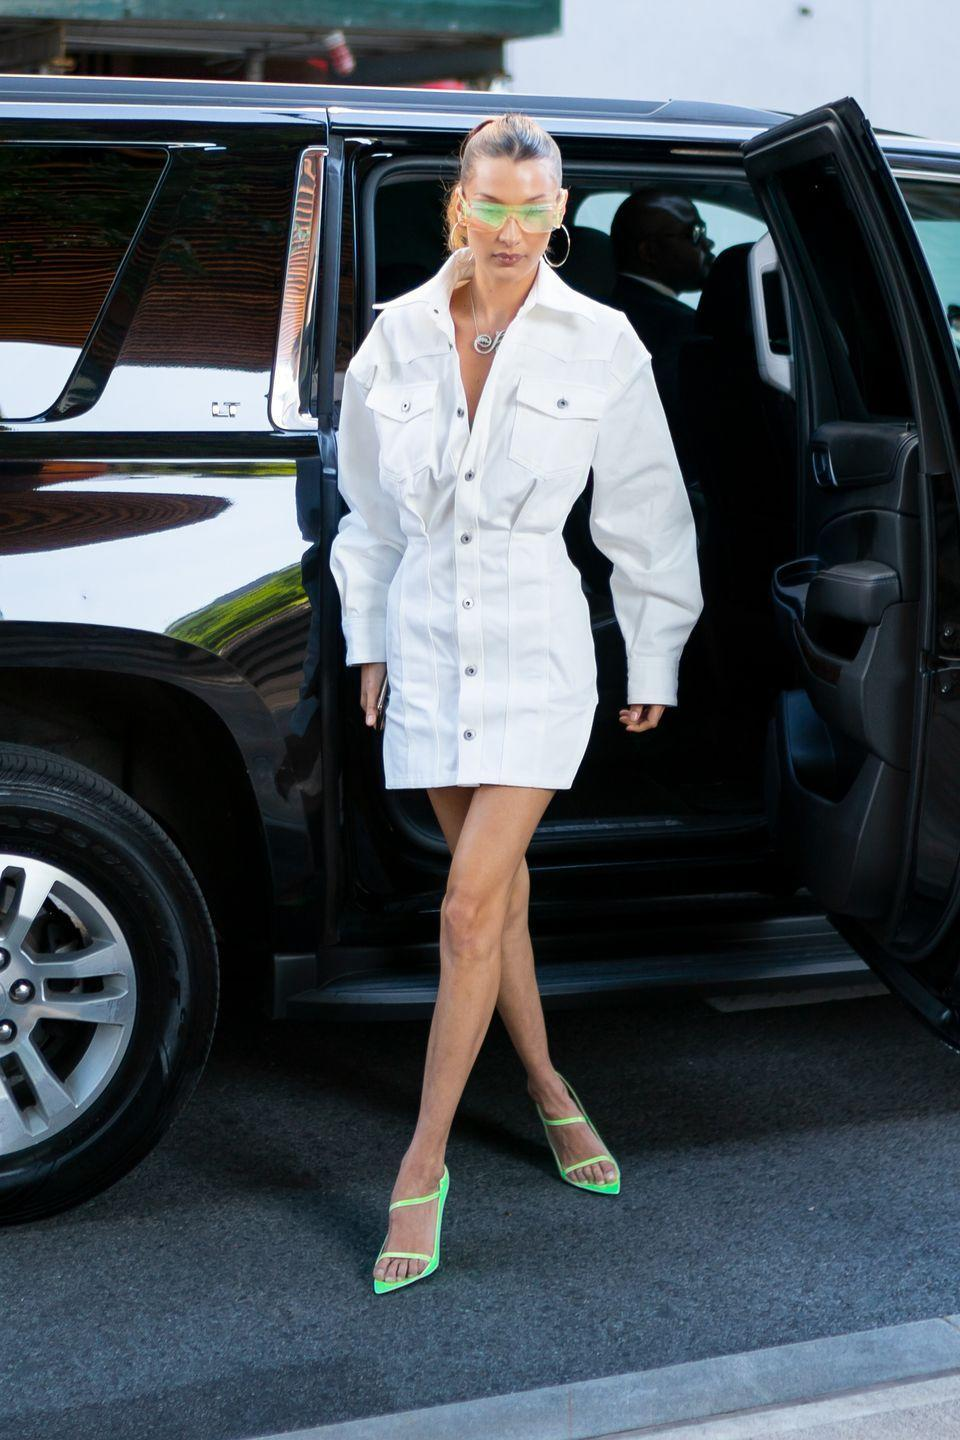 """<p>In an oversized white dress, neon green sunglasses, matching heeled sandals from <a href=""""https://www.harpersbazaar.com/fashion/designers/a27529317/rihanna-first-fenty-collection/"""" rel=""""nofollow noopener"""" target=""""_blank"""" data-ylk=""""slk:Rihanna's Fenty clothing line"""" class=""""link rapid-noclick-resp"""">Rihanna's Fenty clothing line</a>, and a custom necklace from <a href=""""https://nigoratabayer.com/"""" rel=""""nofollow noopener"""" target=""""_blank"""" data-ylk=""""slk:Nigora Tabayer"""" class=""""link rapid-noclick-resp"""">Nigora Tabayer</a> while exiting her car in Brooklyn, New York.</p>"""